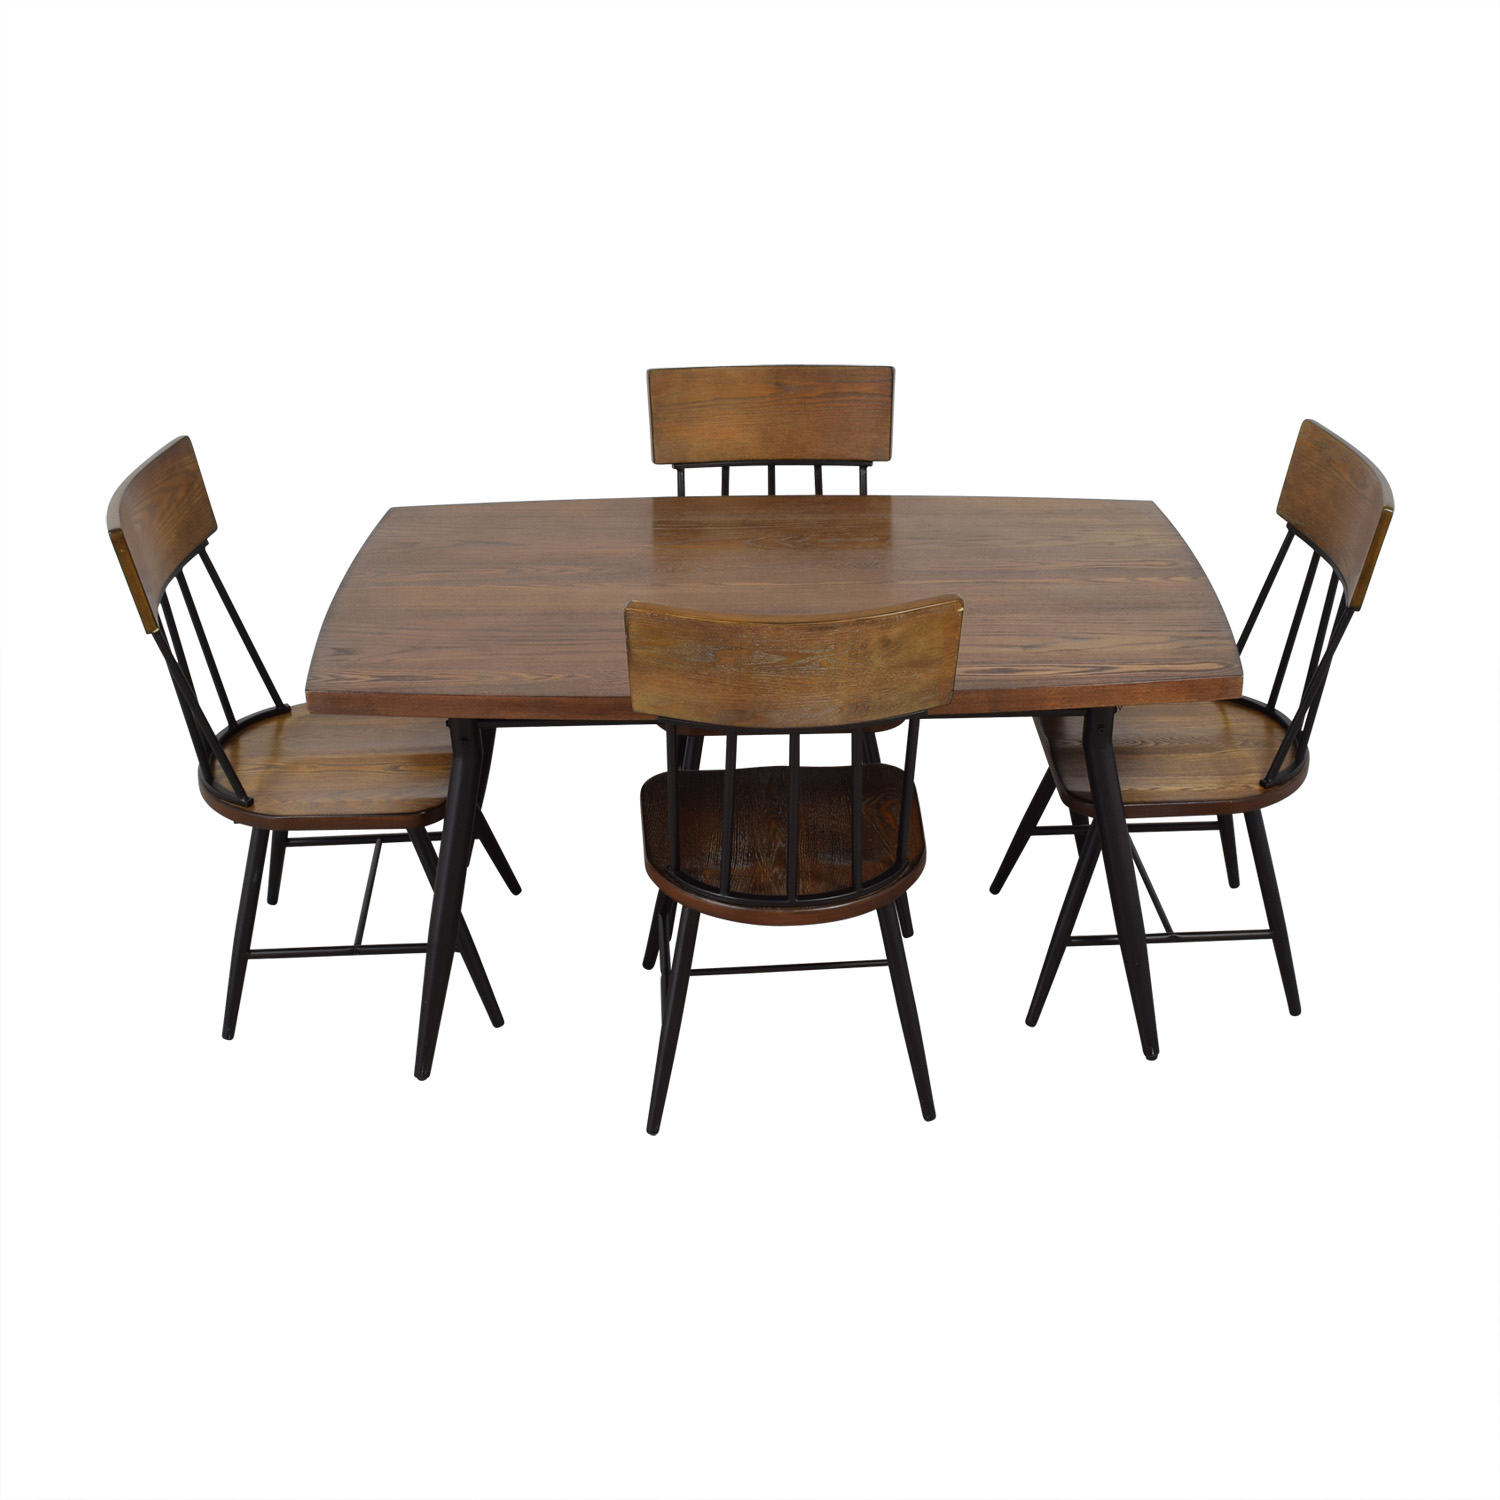 Ashley Furniture Ashley Furniture Wood Dining Room Table and Chair Set nyc